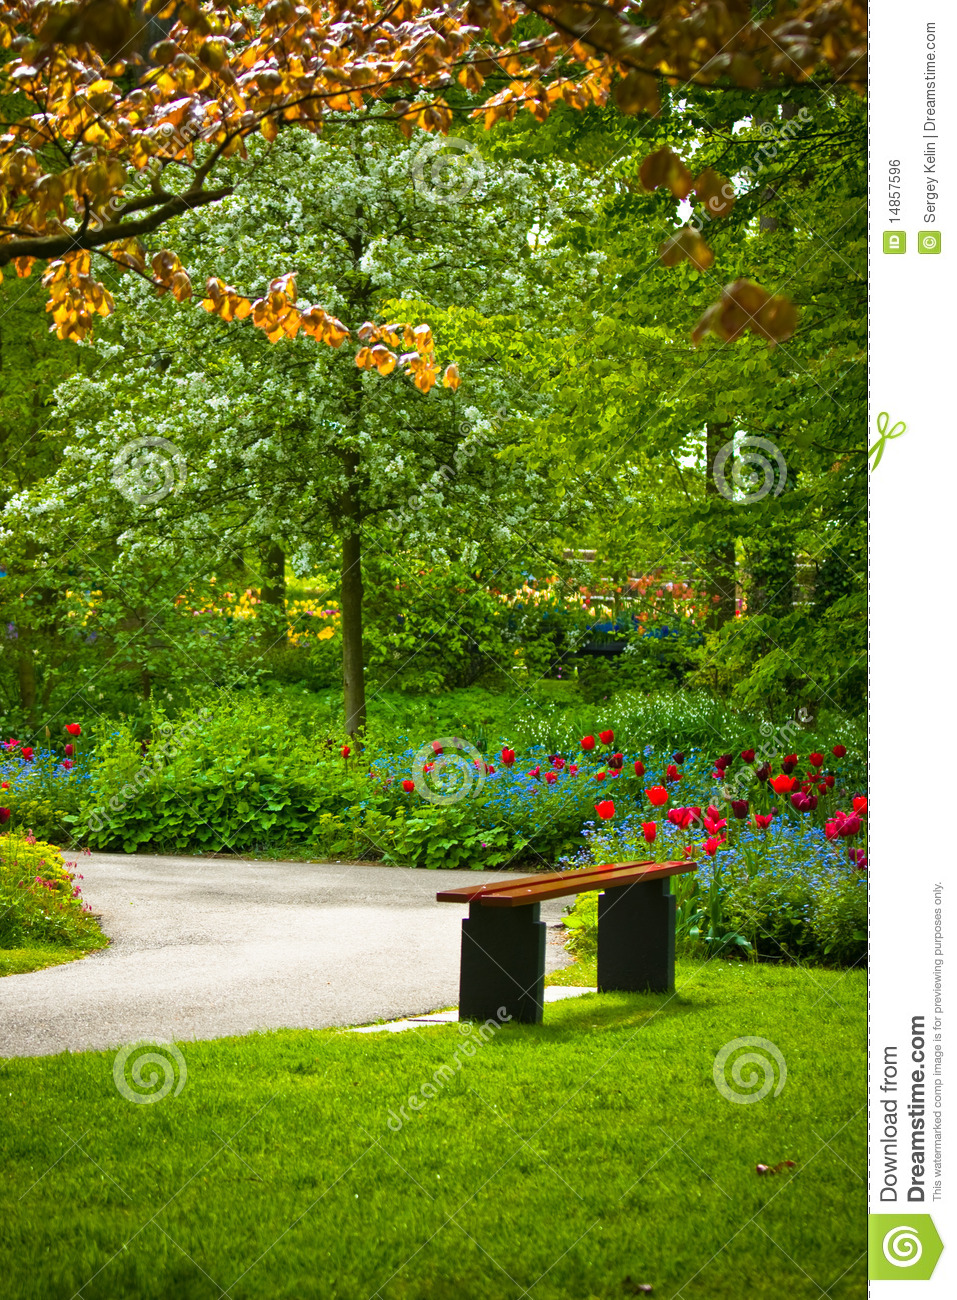 ... similar stock images of ` Bench under a tree with flowers in a park